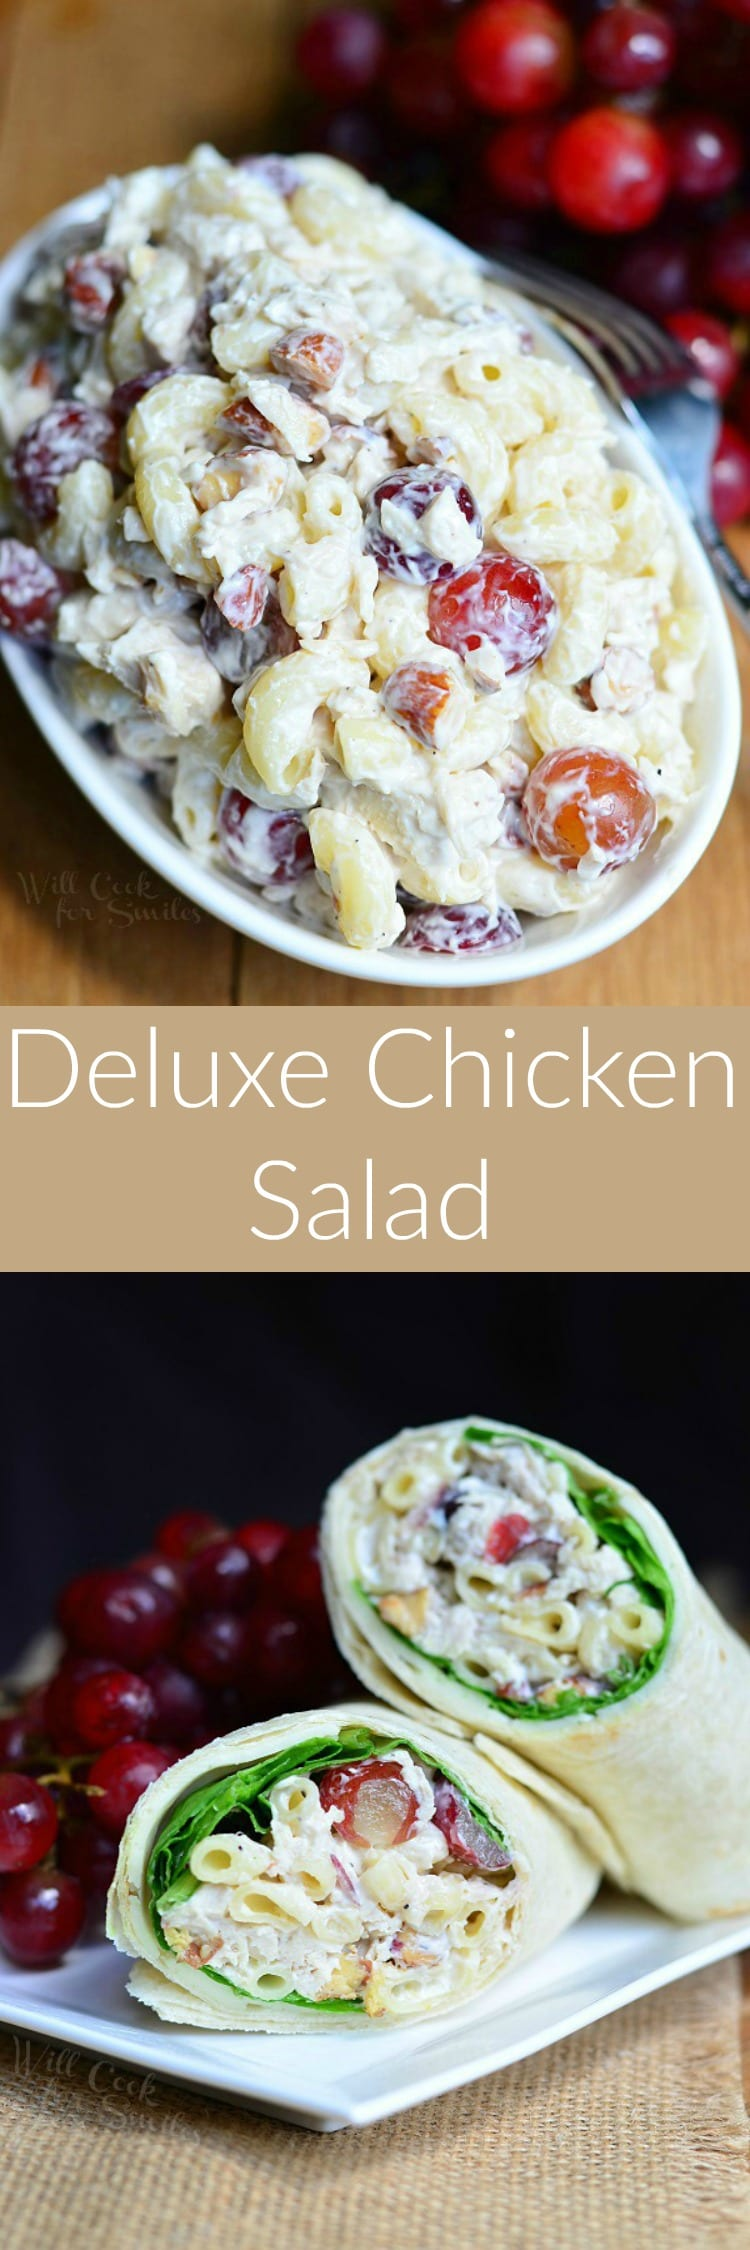 Deluxe Chicken Salad! Delicious Chicken Salad made with elbow macaroni, grapes and toasted almonds for that crunch we all love so much. #chickensalad #coldsalad #pastasalad